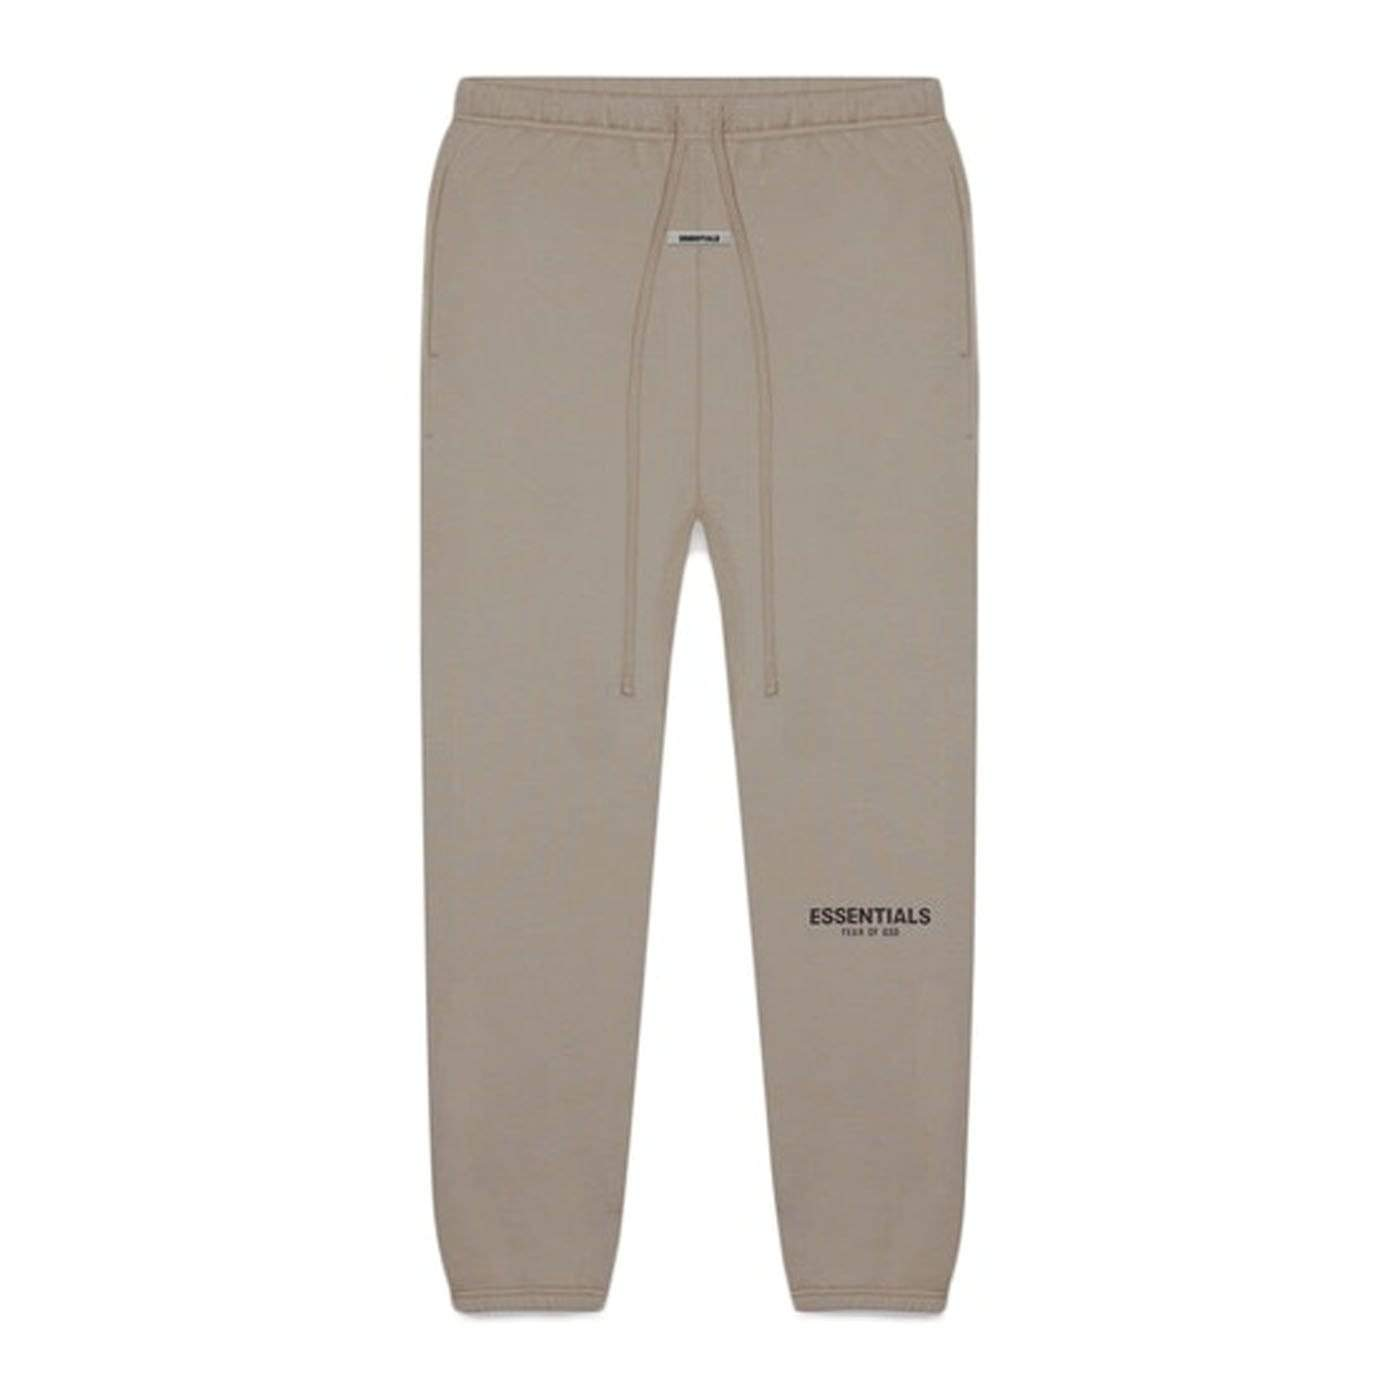 FEAR OF GOD ESSENTIALS Sweatpants Taupe - Kick Game